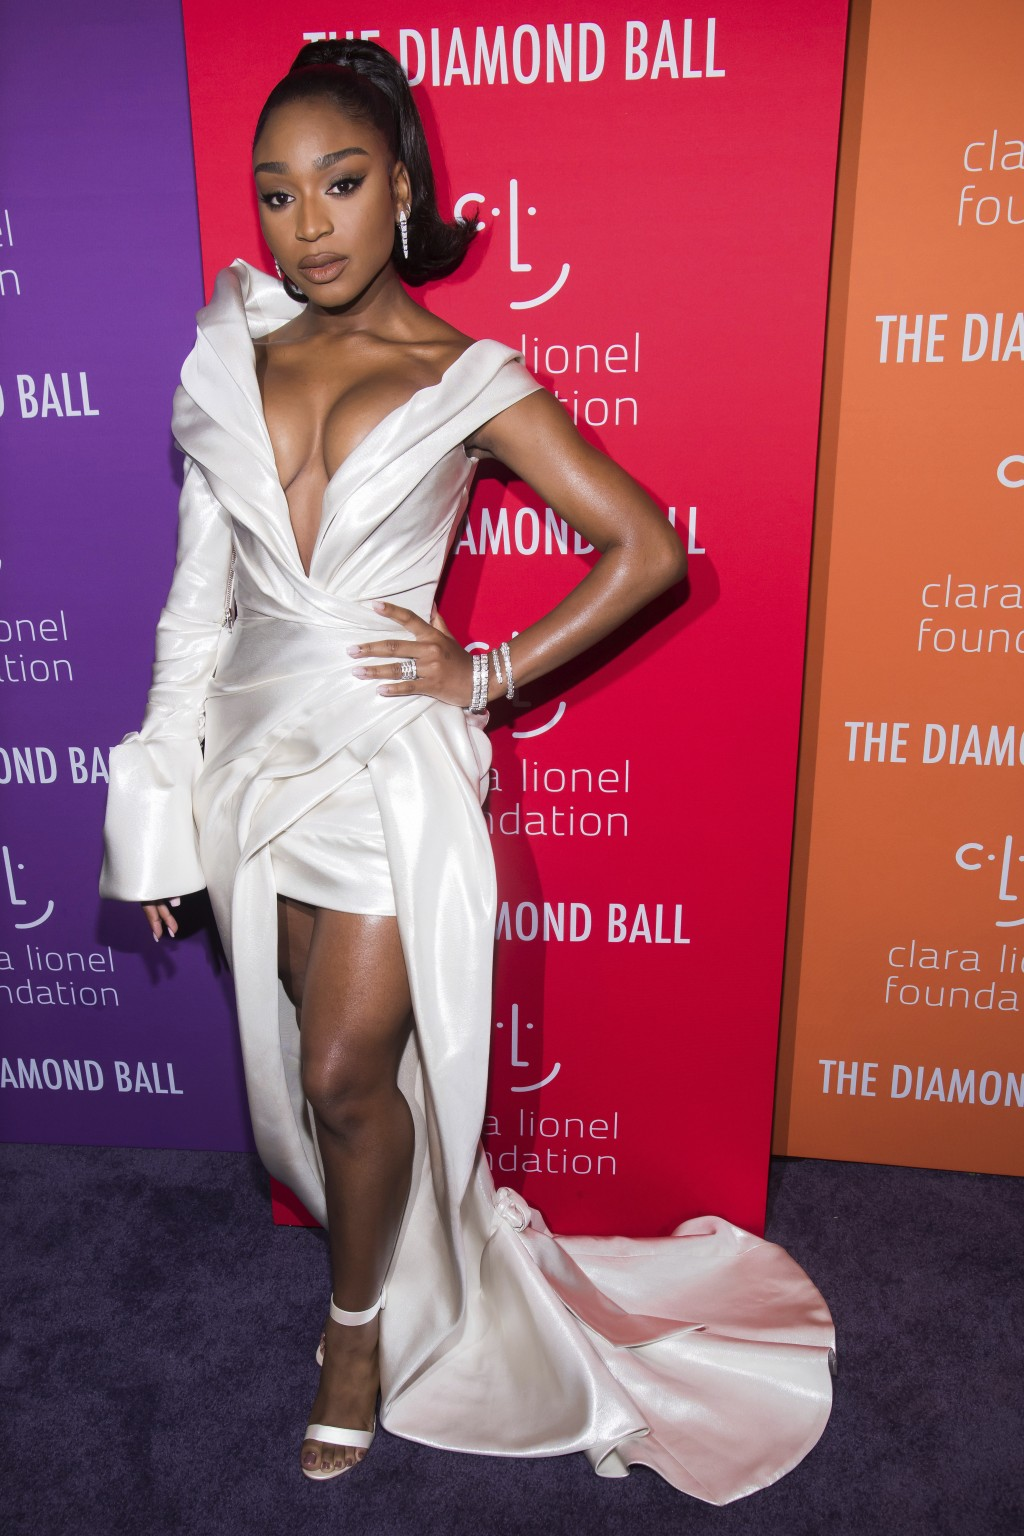 Normani attends the 5th annual Diamond Ball benefit gala at Cipriani Wall Street on Thursday, Sept. 12, 2019, in New York. (Photo by Charles Sykes/Inv